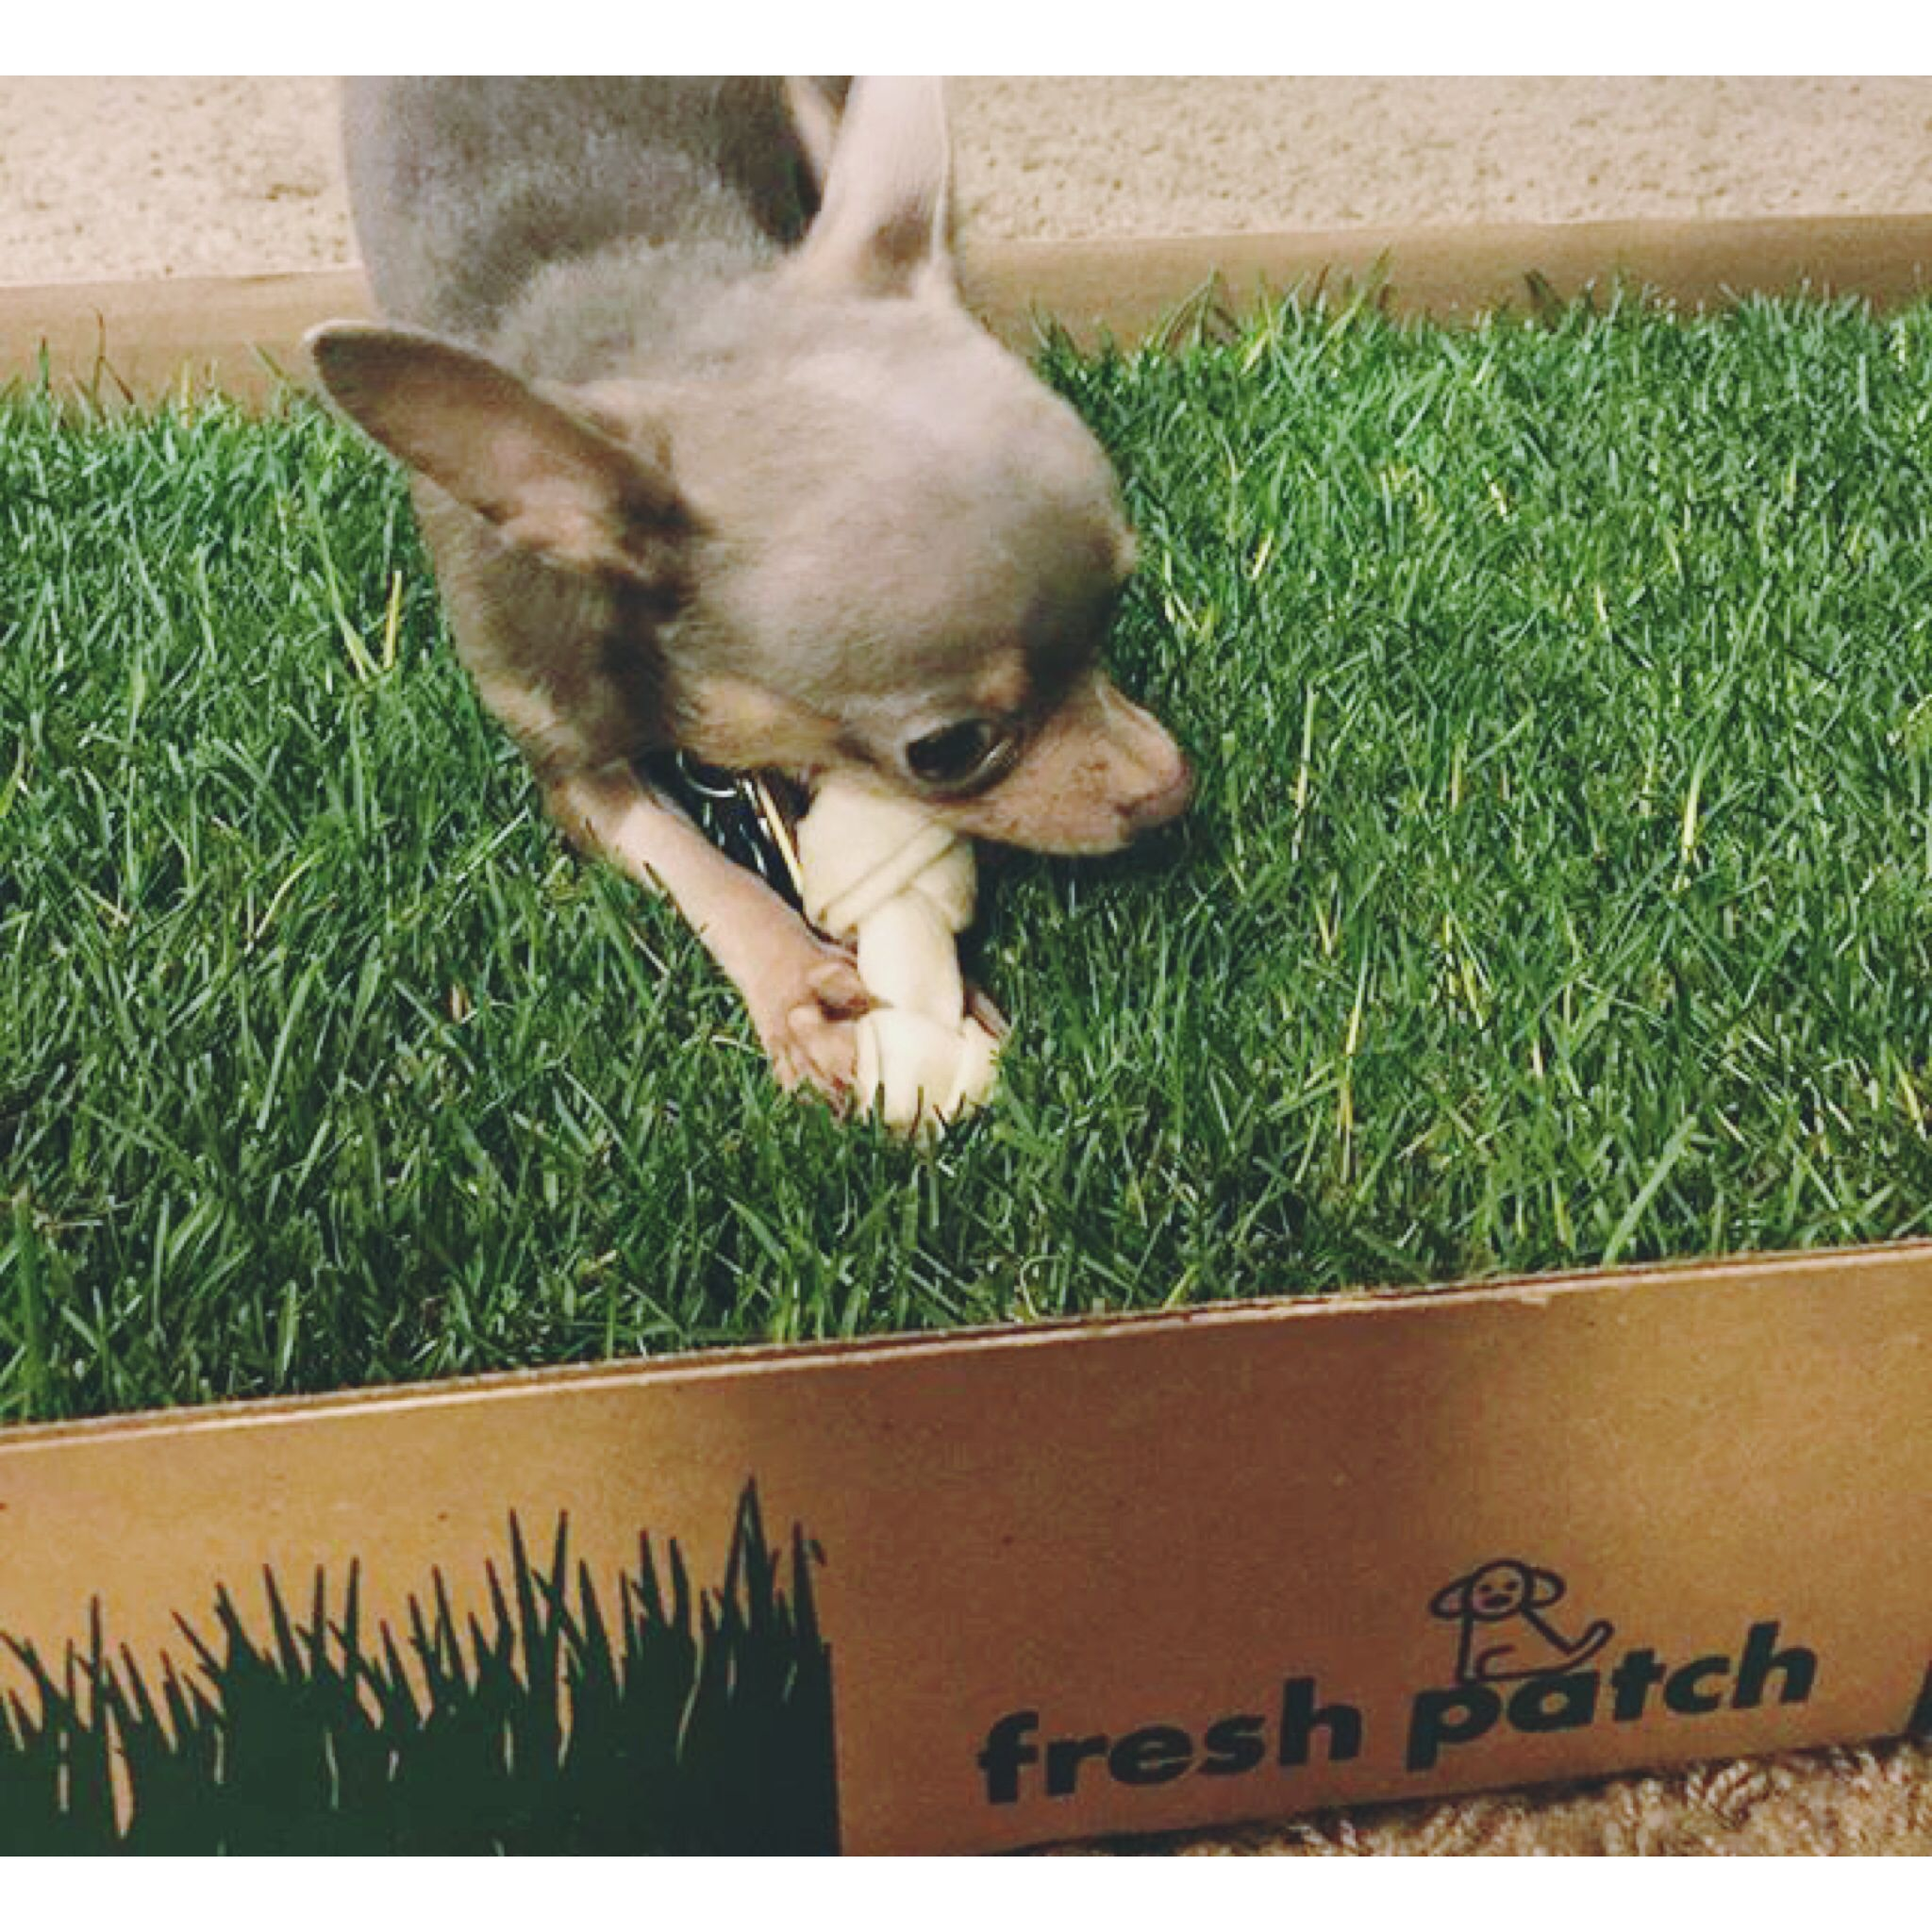 Chihuahuas do it best especially on a fresh patch the